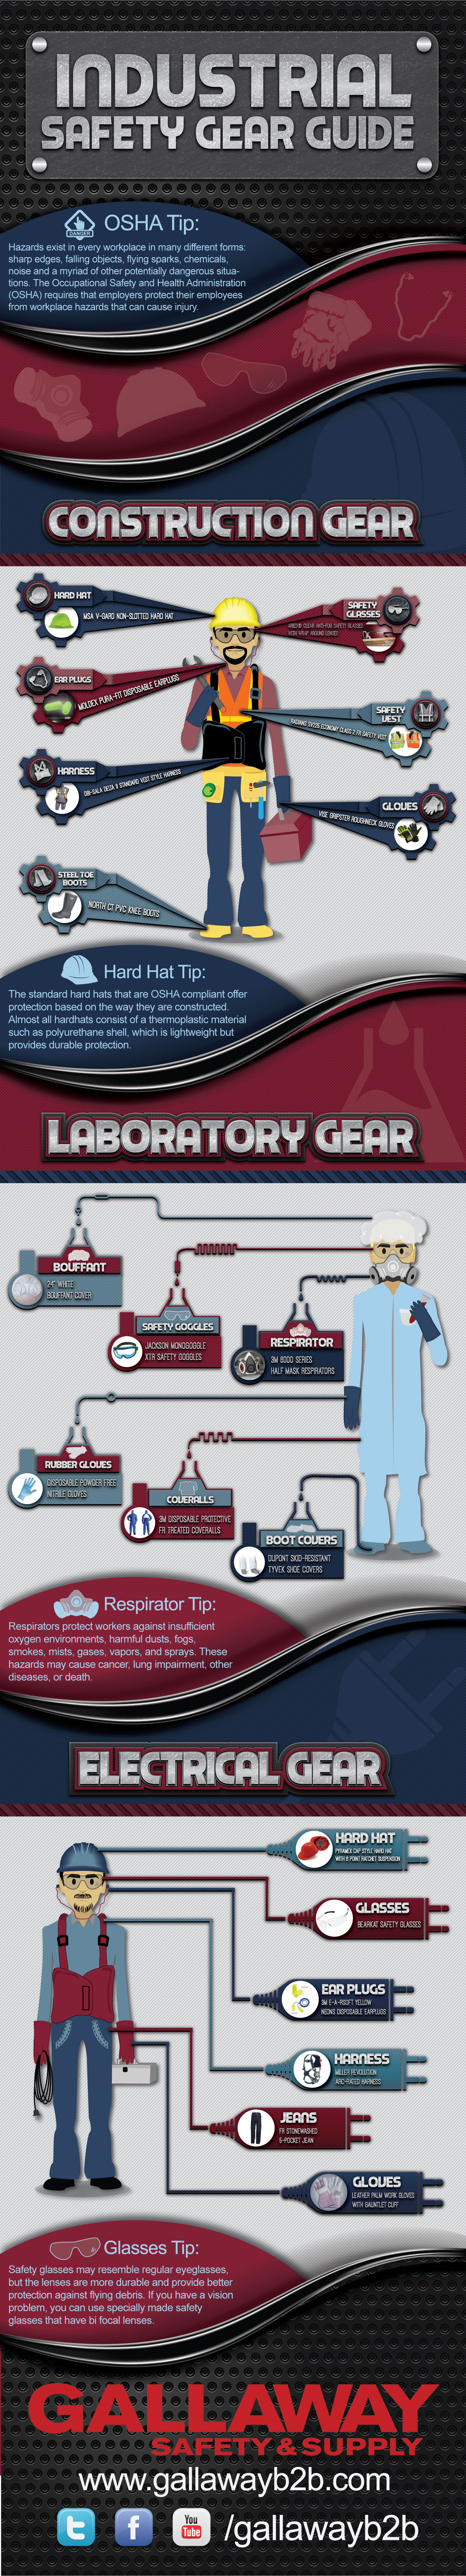 infographic-industrial-safety-guide_5257014b876e4